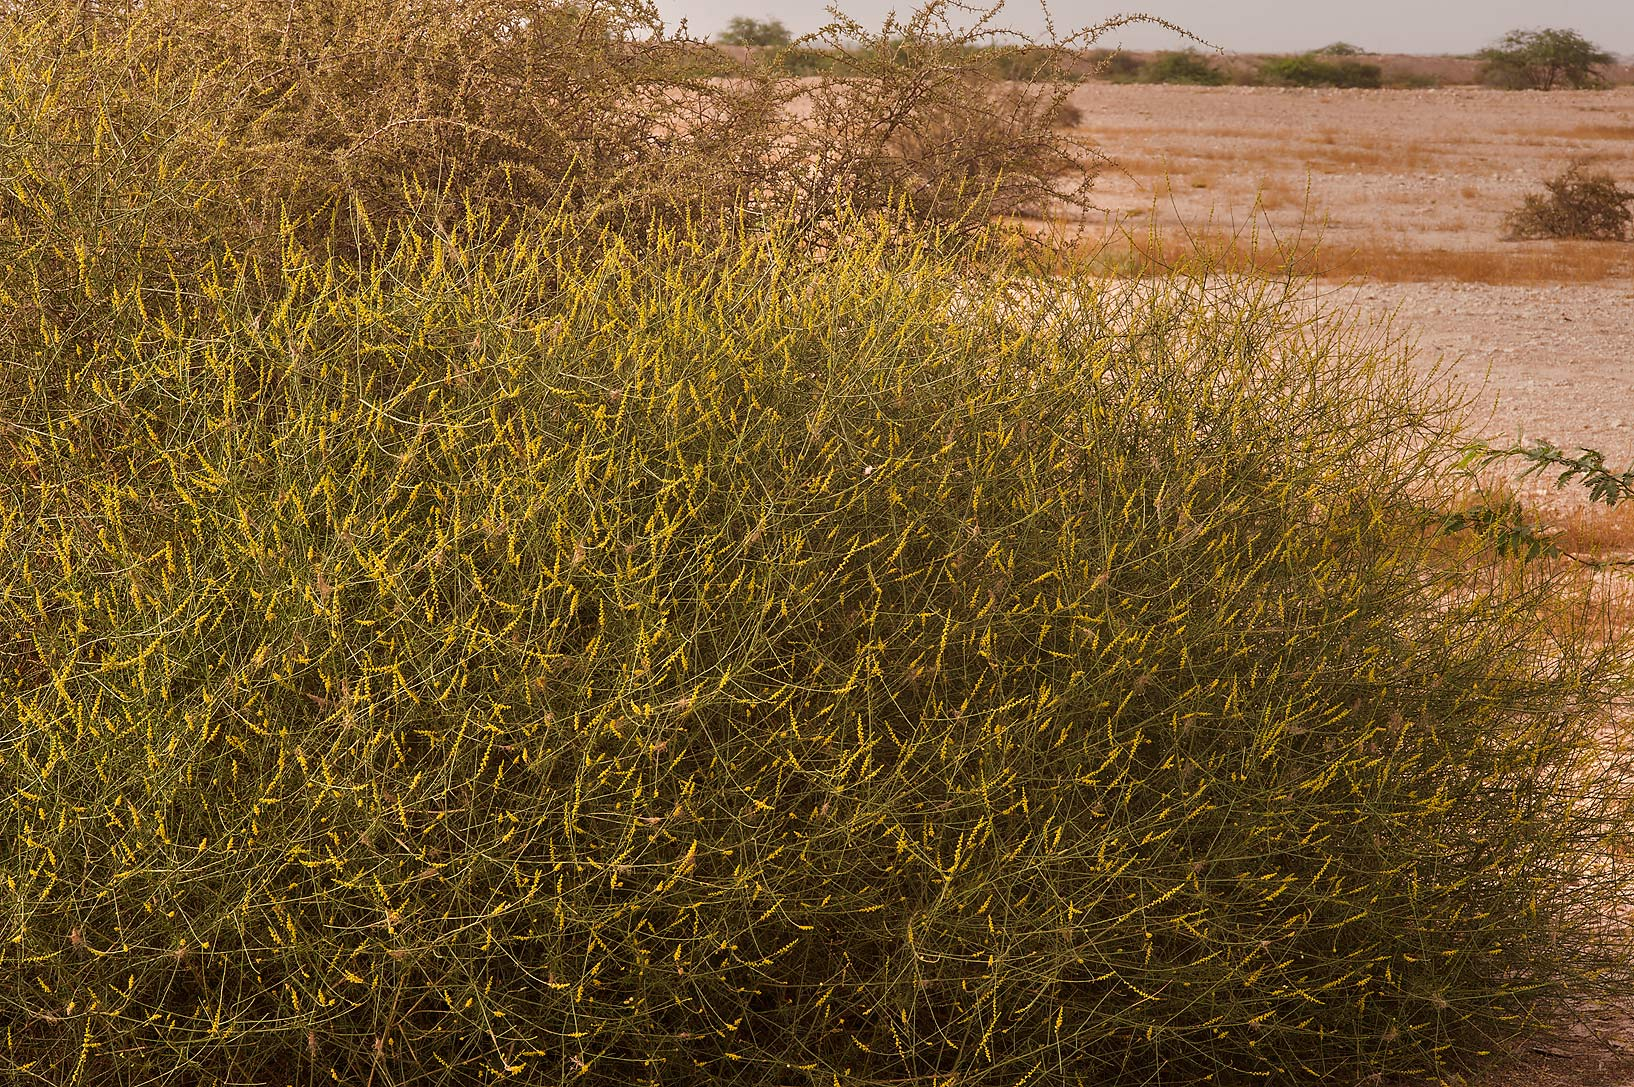 Bush of Ochradenus baccatus (local names qardi...of Al Magdah farms in northern Qatar